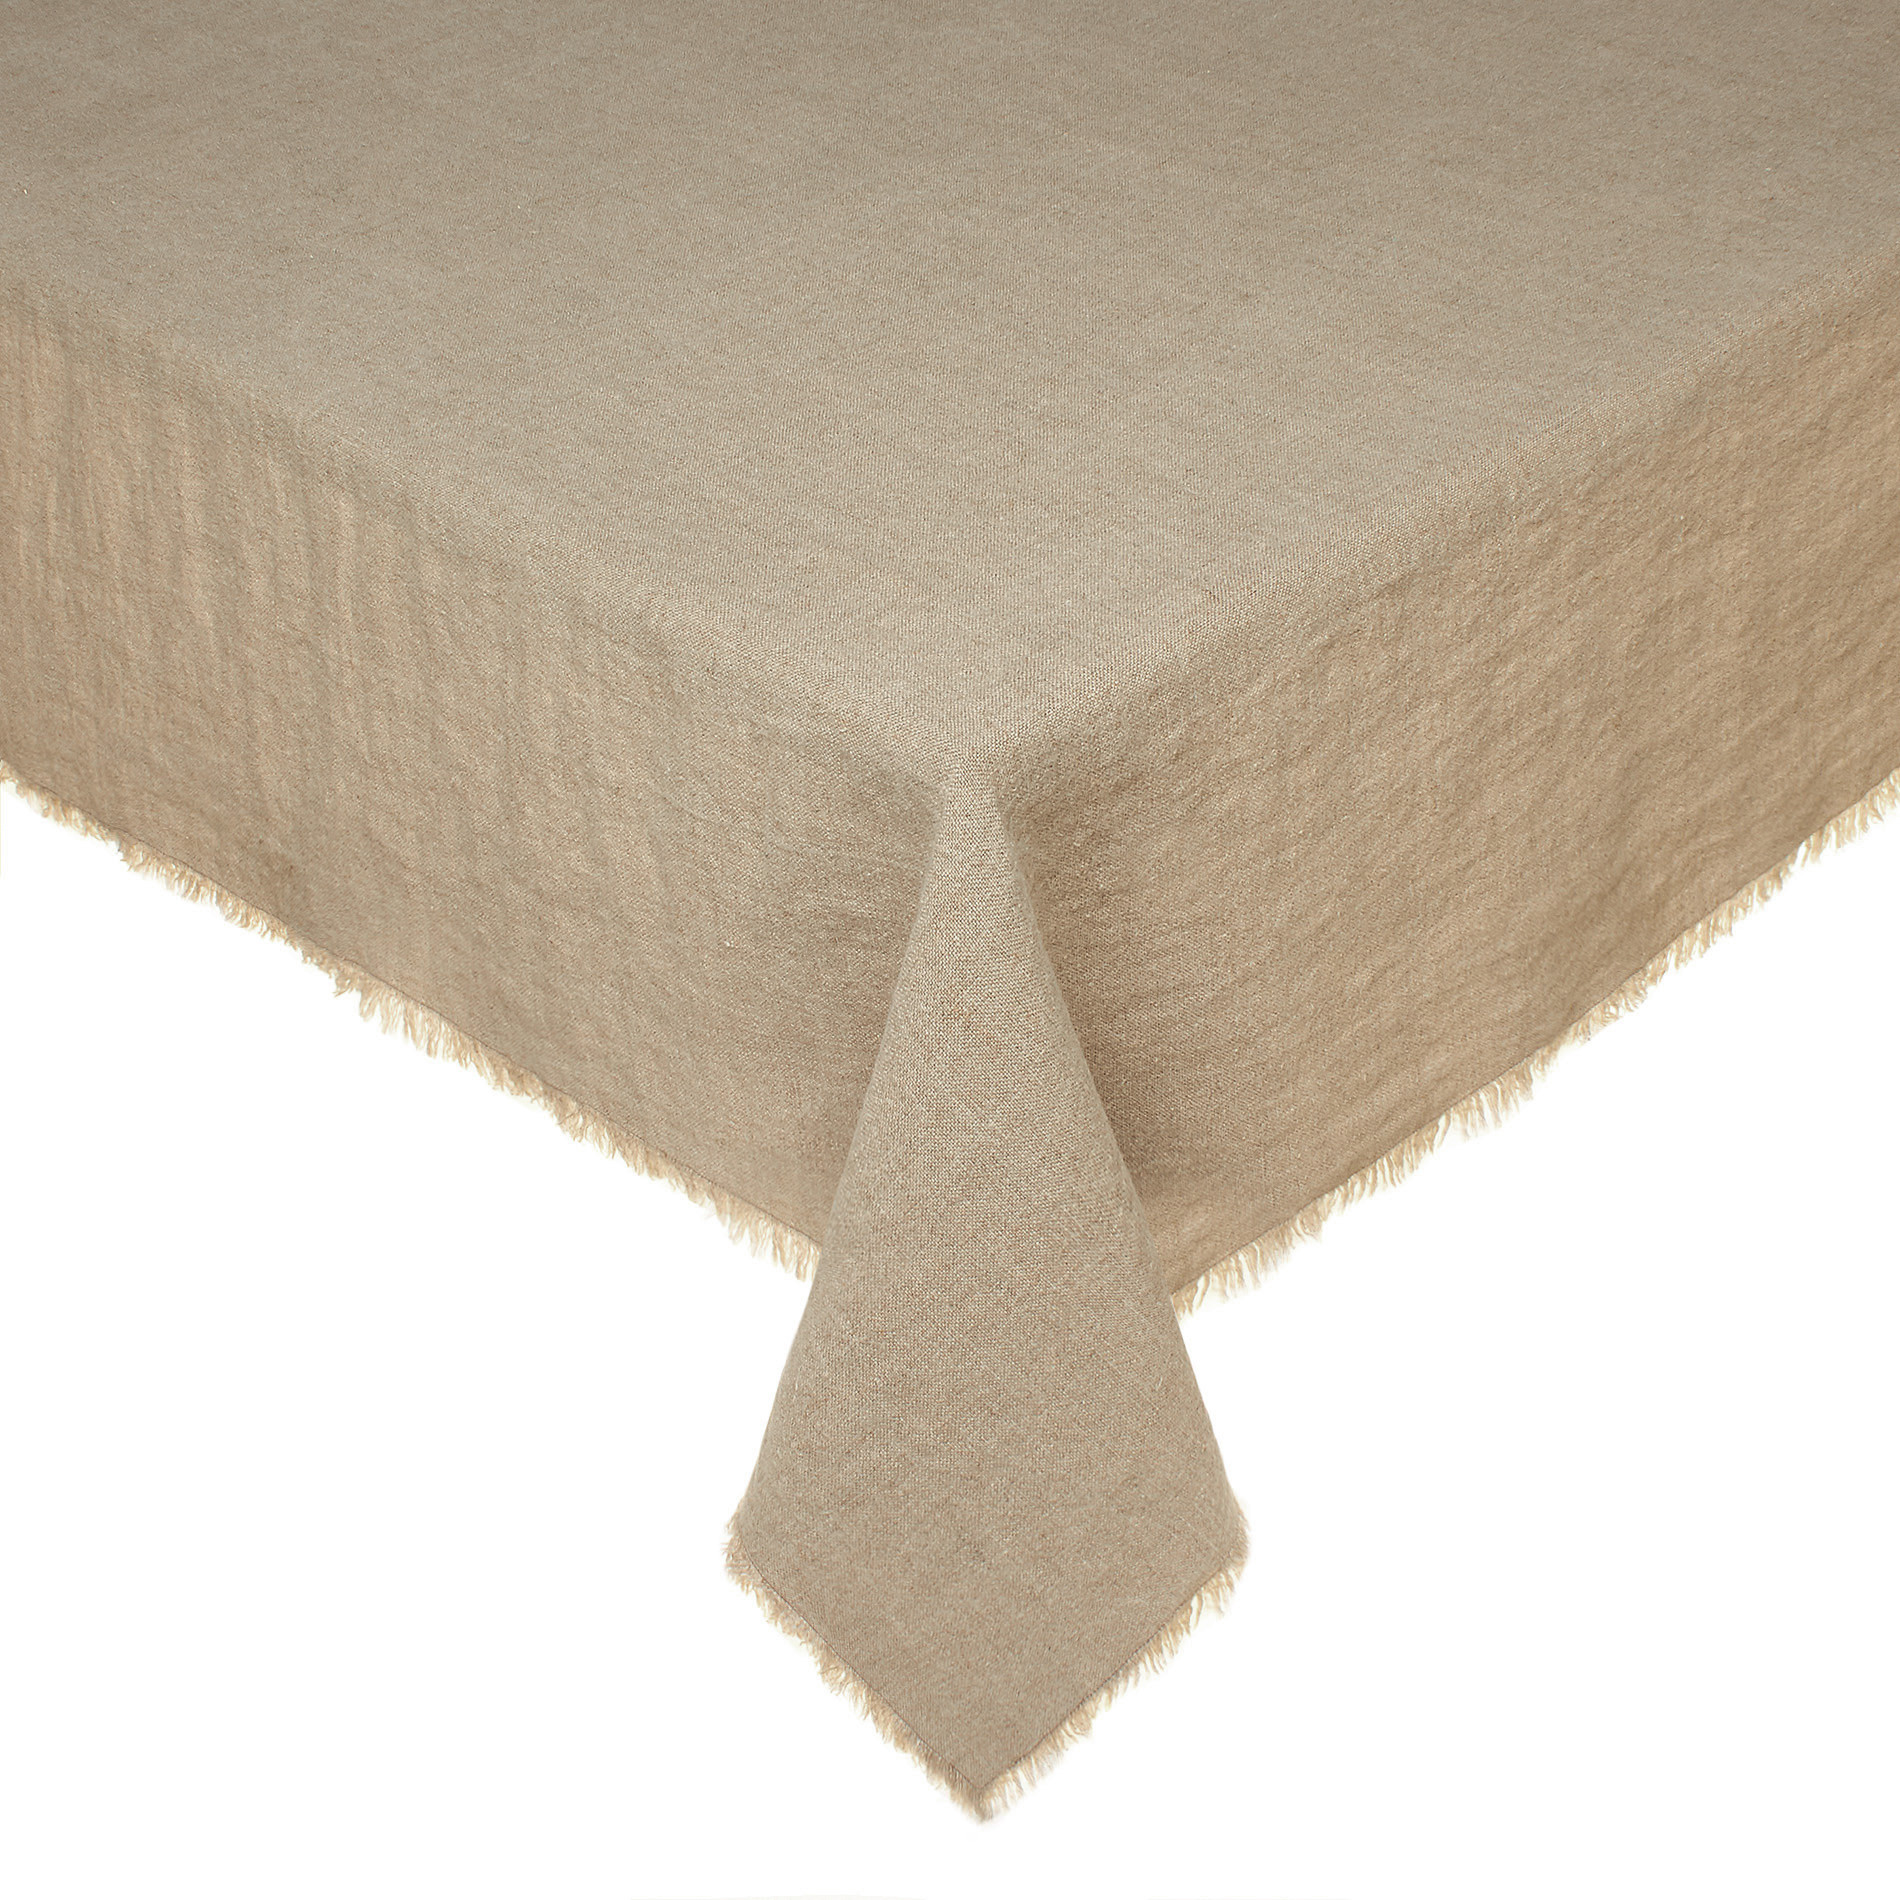 100% Portuguese Linen Fringed Tablecloth